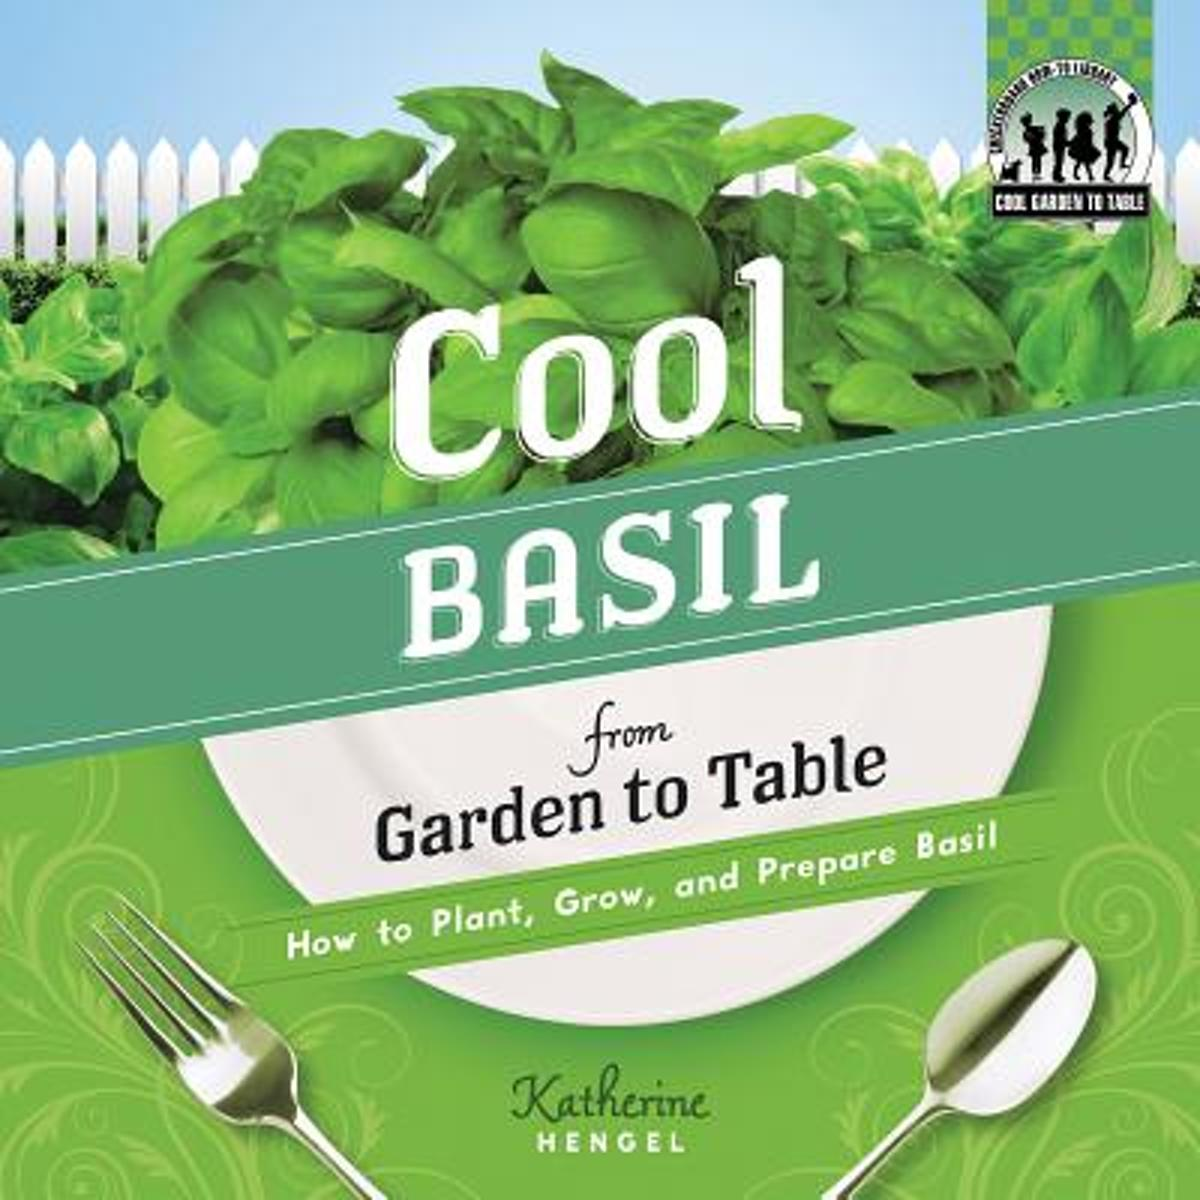 Cool Basil from Garden to Table